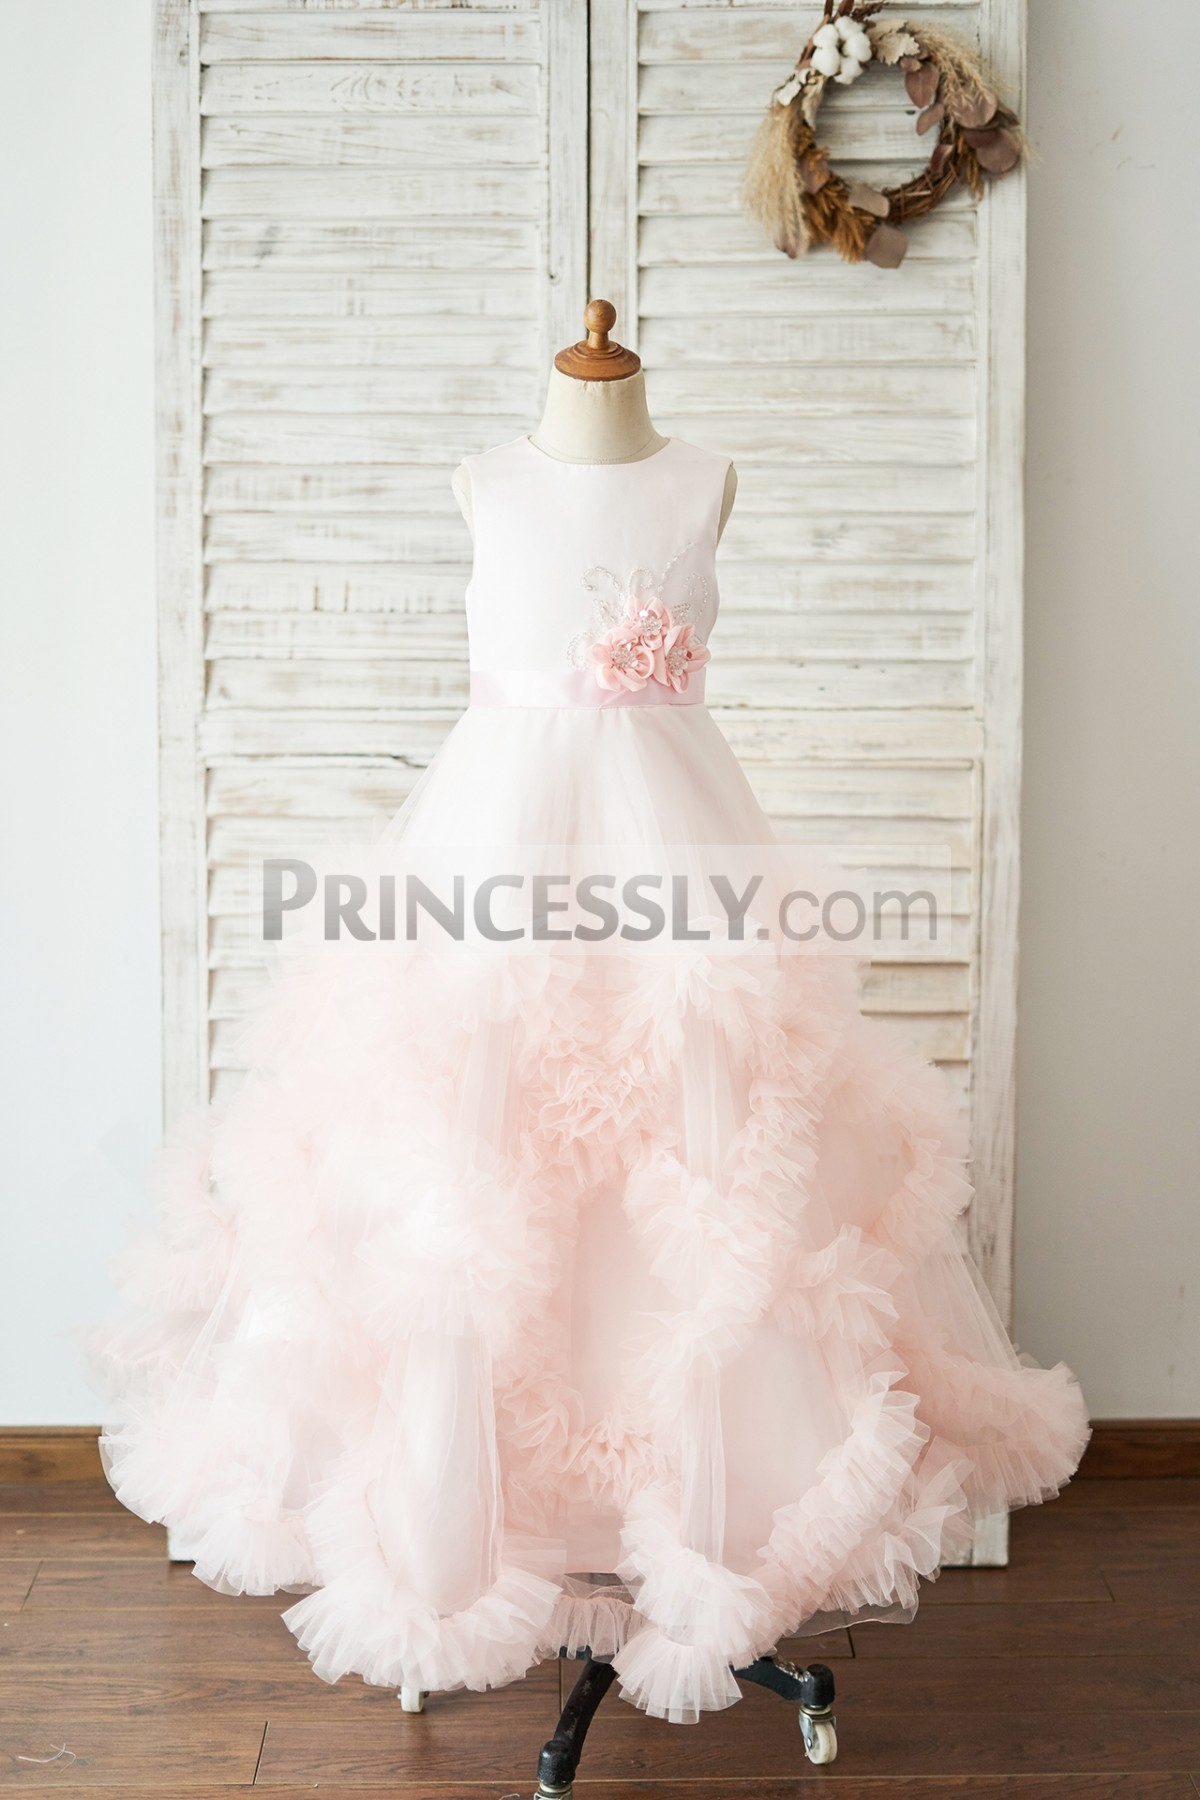 Princessly.com-K1004051-Pink Satin Tulle Keyhole Back Ruffles Wedding Flower Girl Dress-31